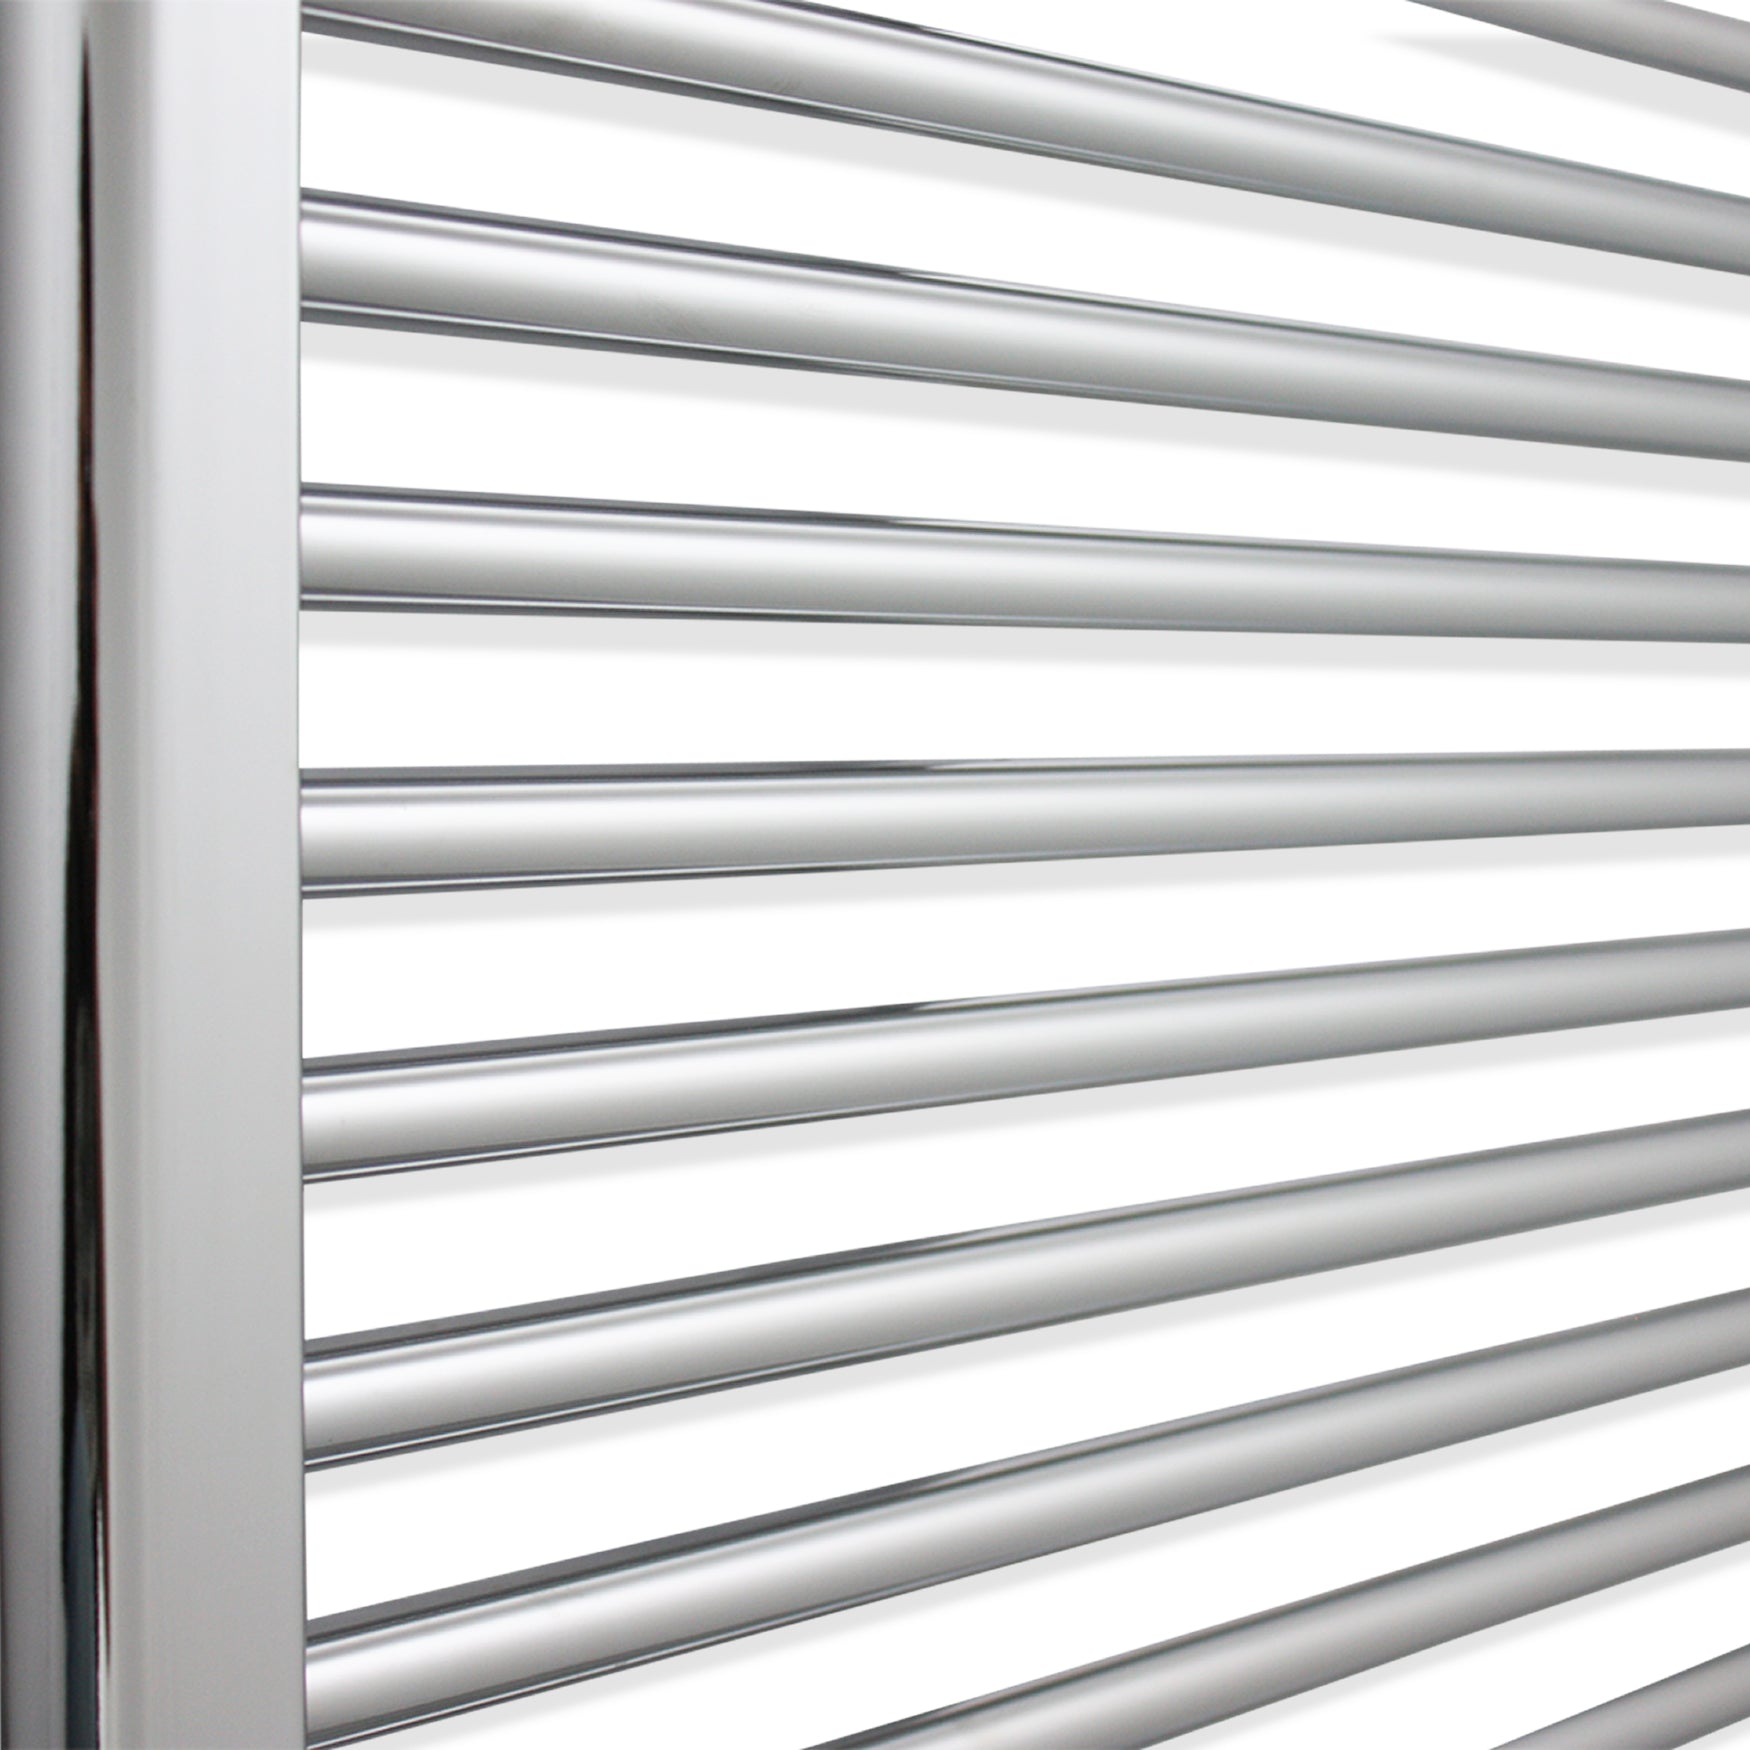 400mm Wide 1000mm High Flat Chrome Heated Towel Rail Radiator HTR